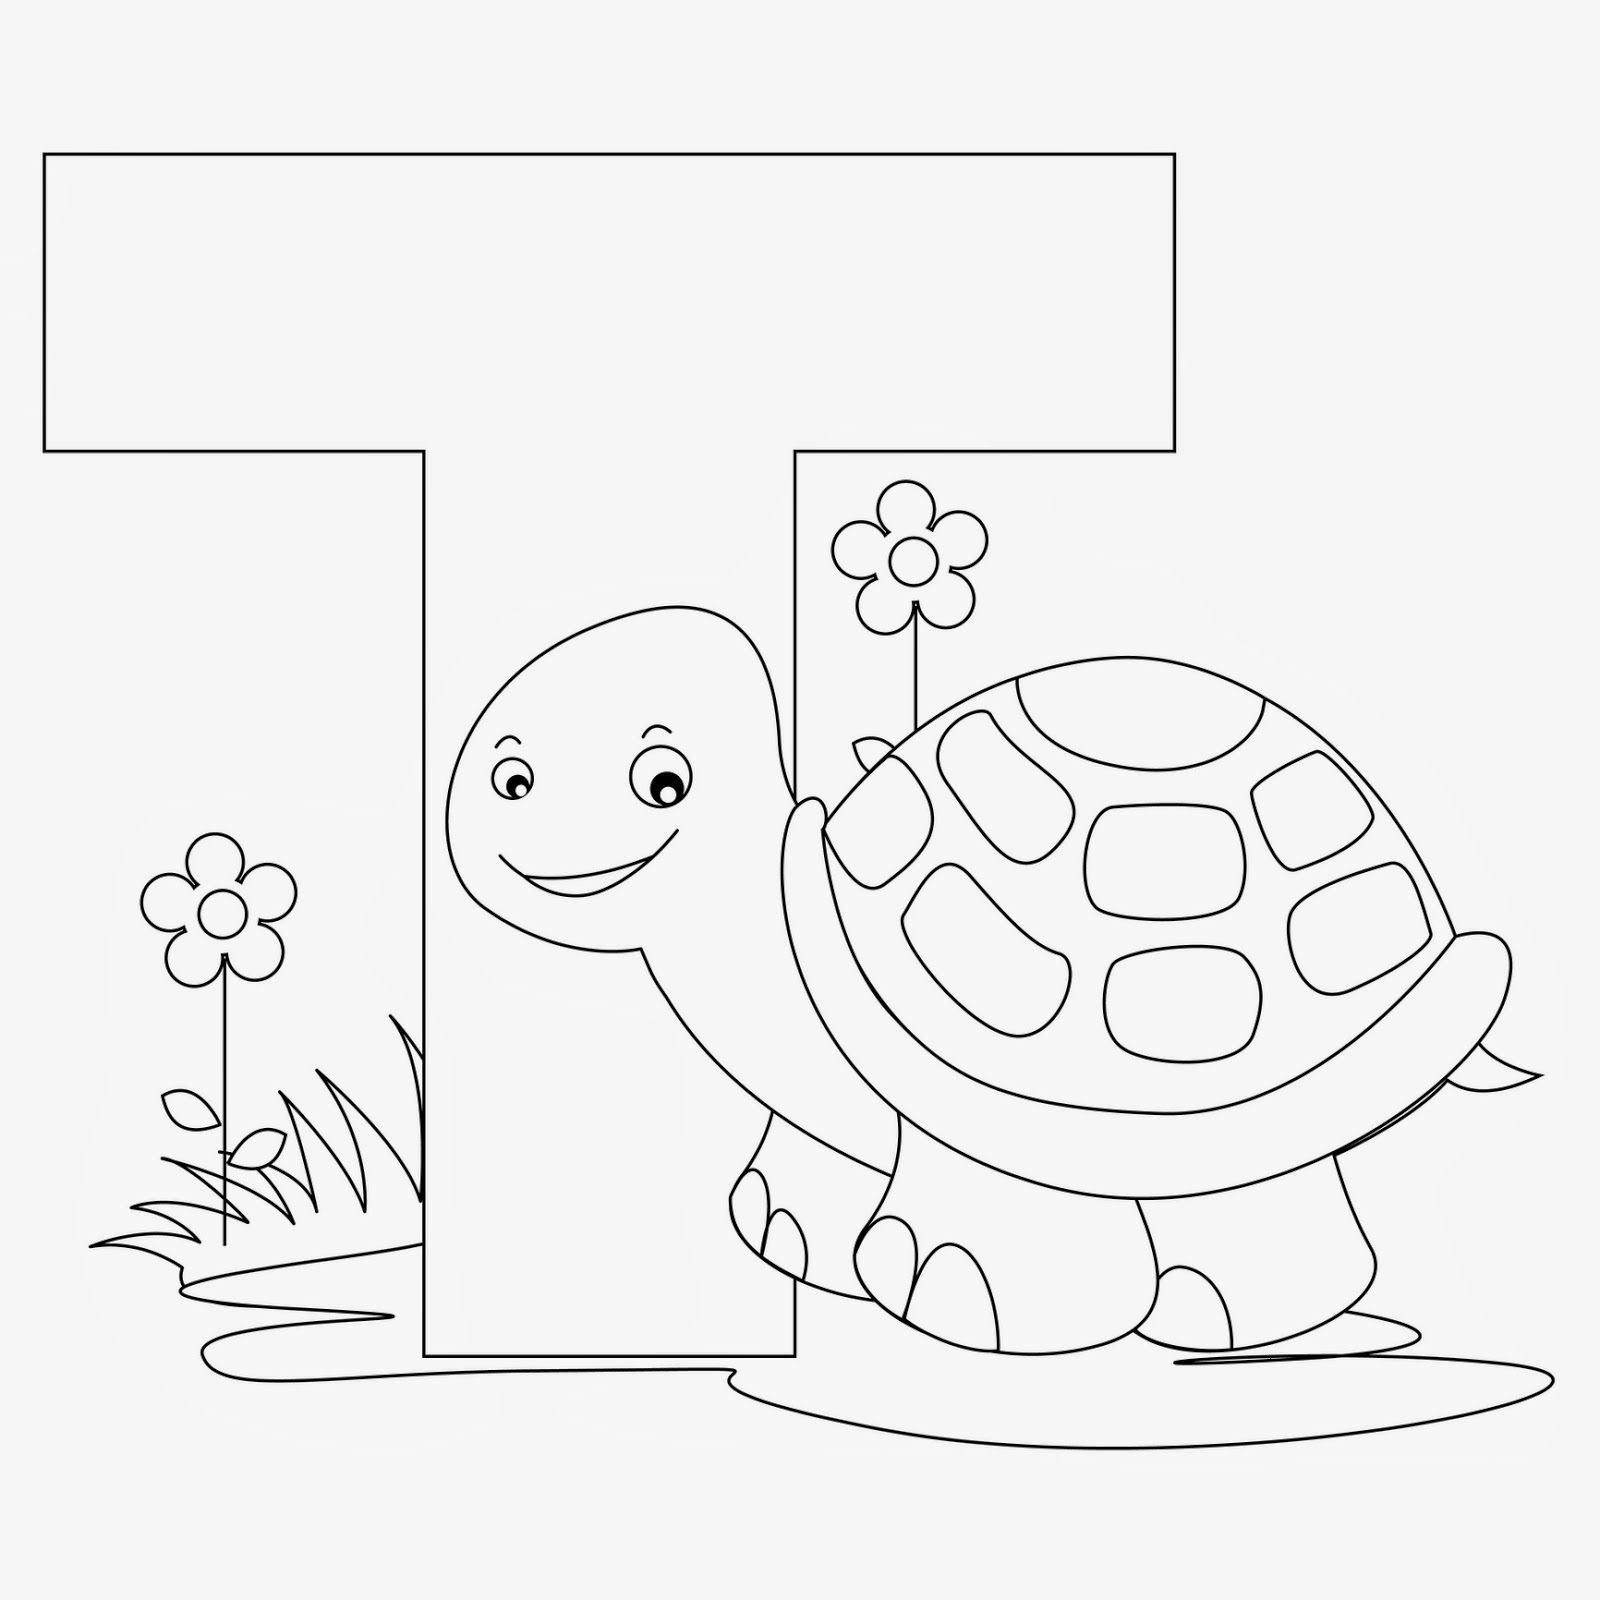 smores coloring pages ask queen semira 4 more separate coloring book pages now pages coloring smores